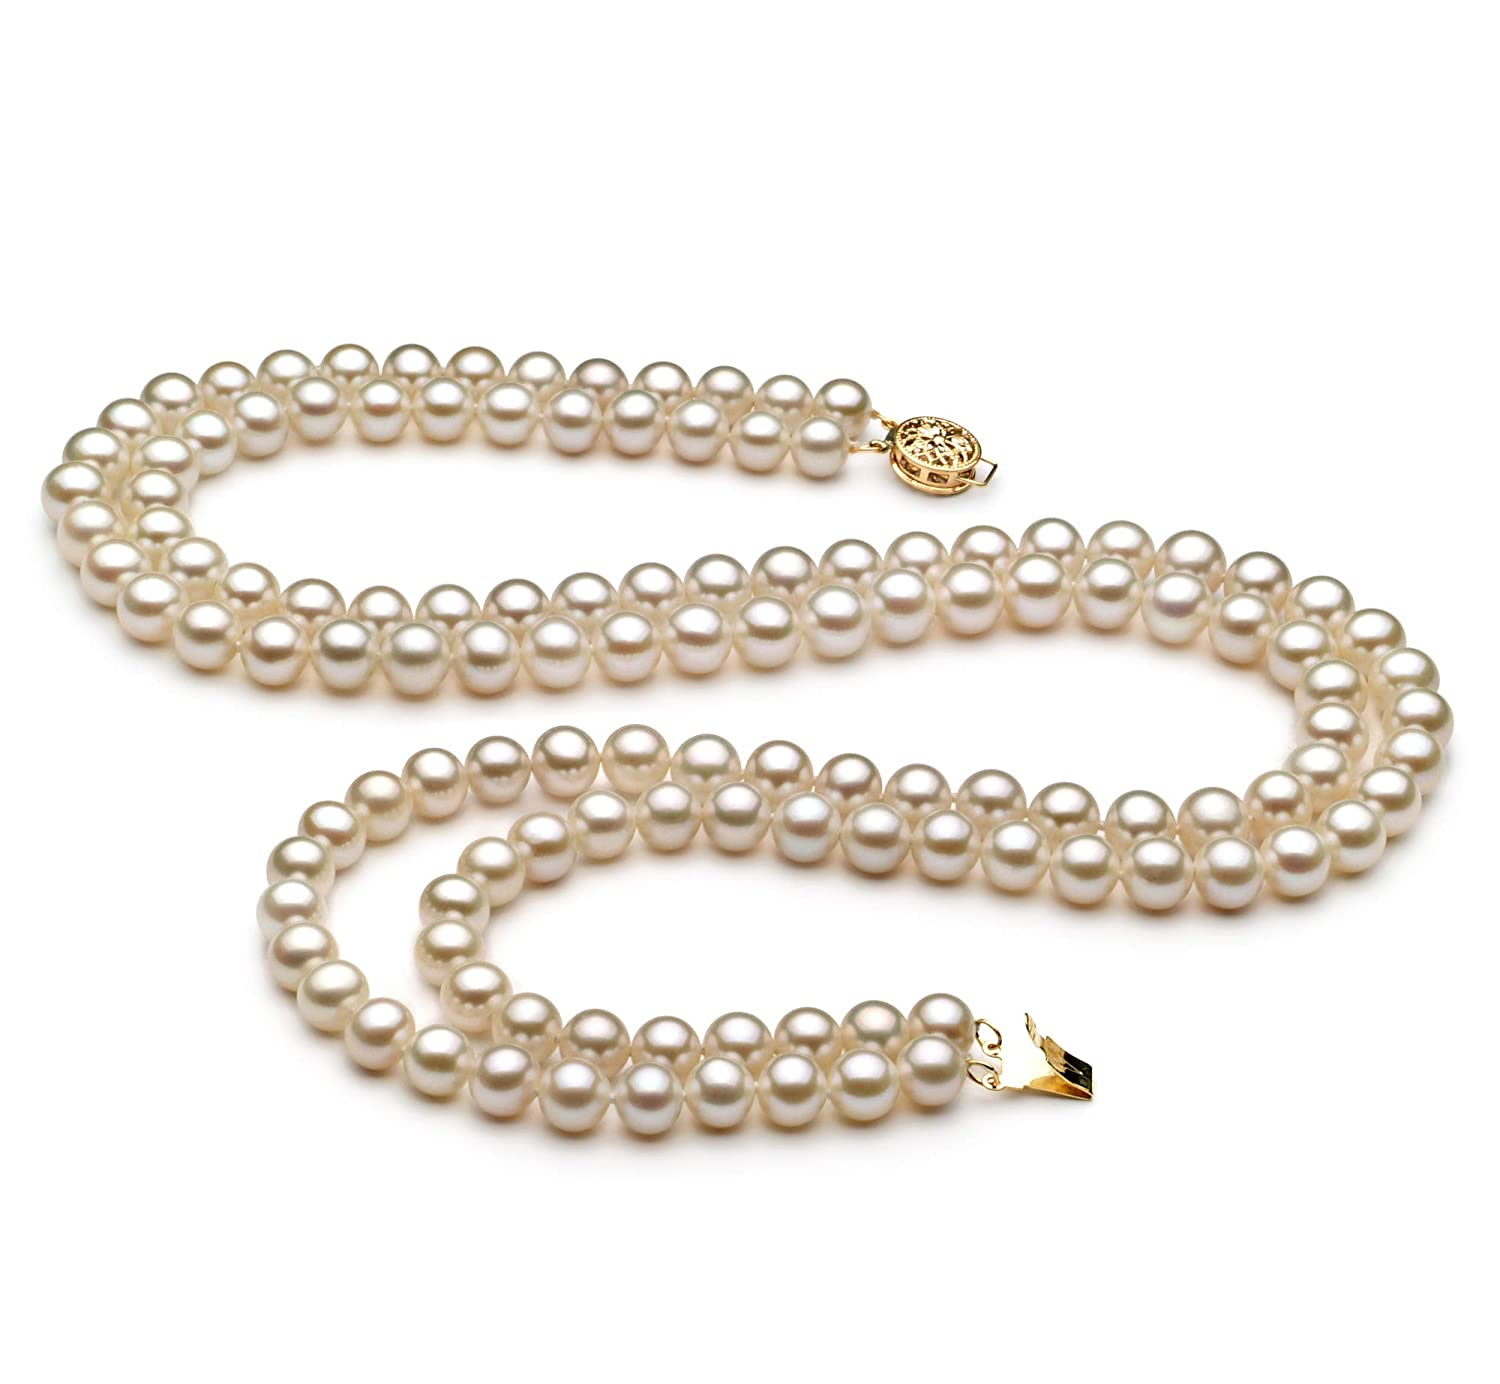 7ae4107f01f88 Liah White 6-7mm Double Strand AA Quality Freshwater Cultured Pearl  Necklace for Women